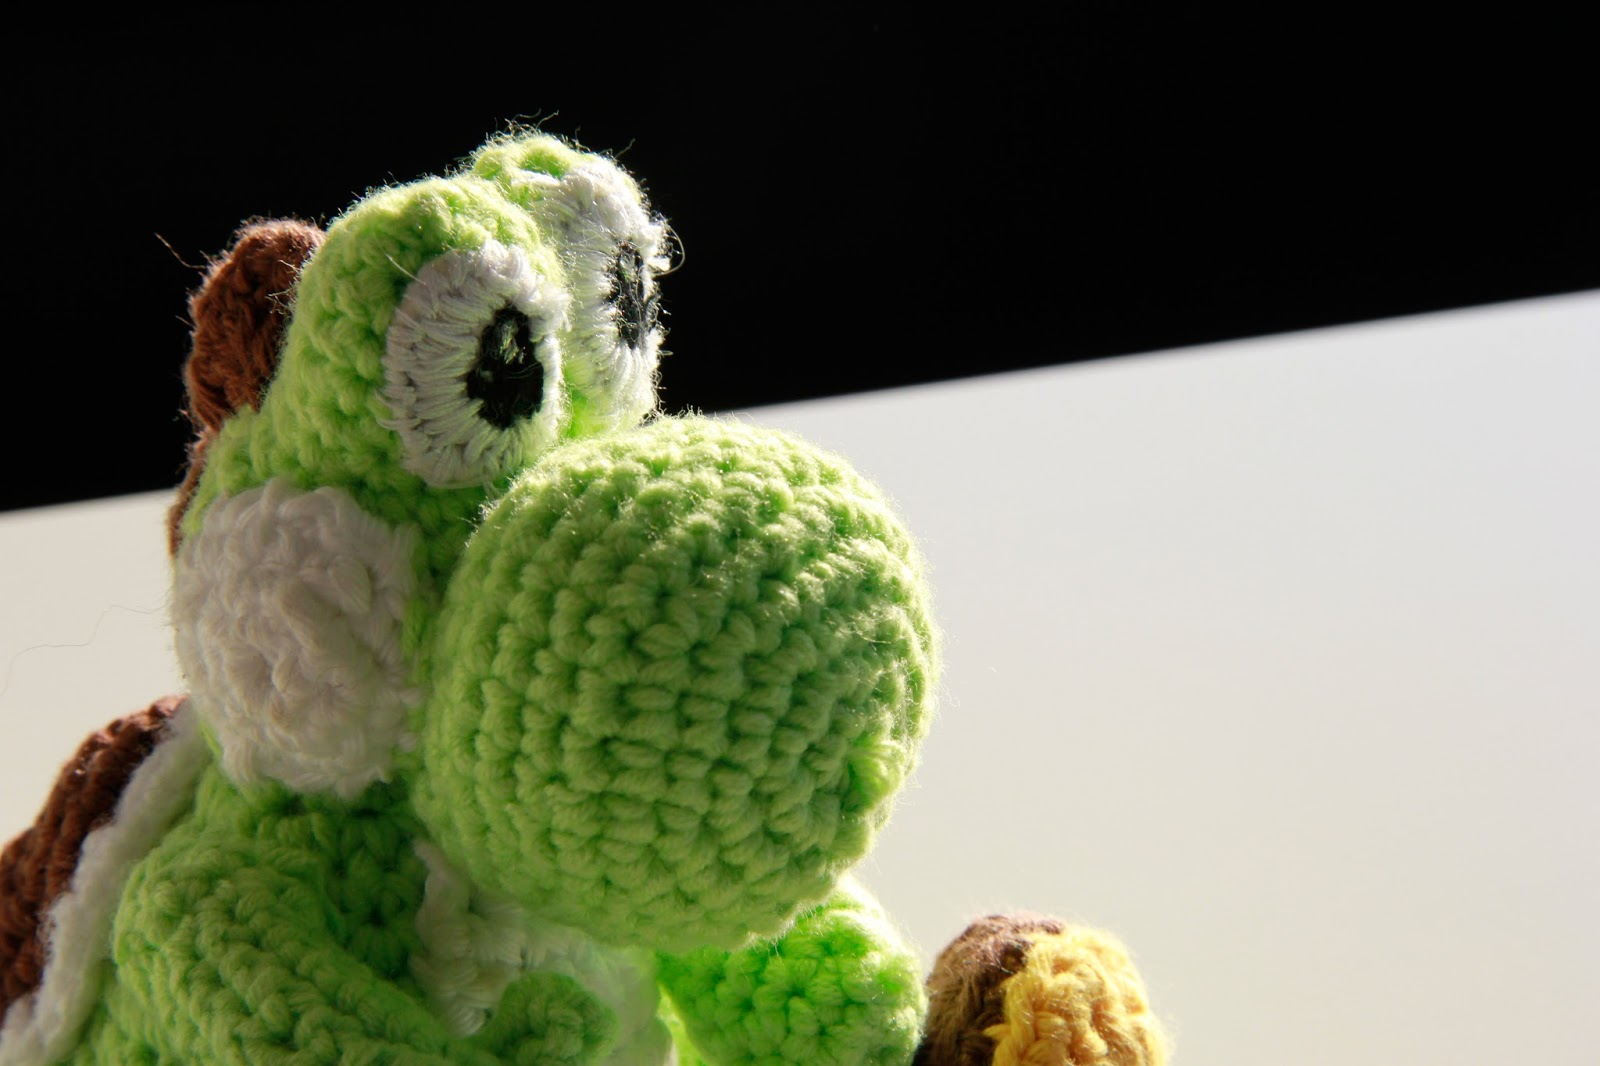 Crochet Pattern Free Amigurumi : Saroh?s do-it-yourself Blog: Free Yoshi Amigurumi Crochet ...